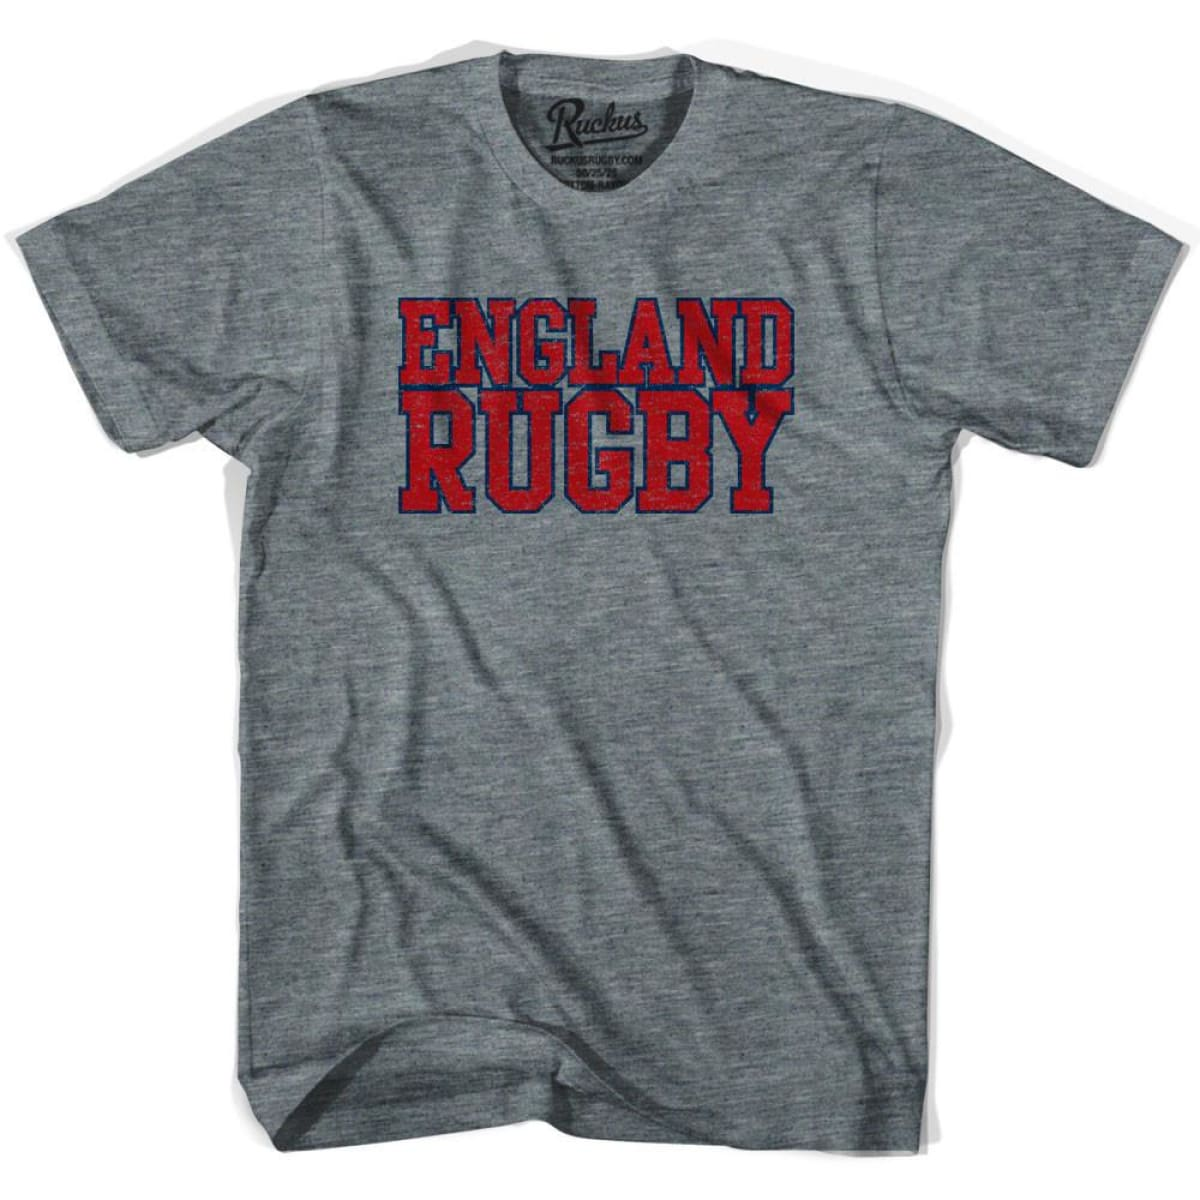 England Rugby Nations T-shirt - Athletic Grey / Adult Small - Rugby T-shirt